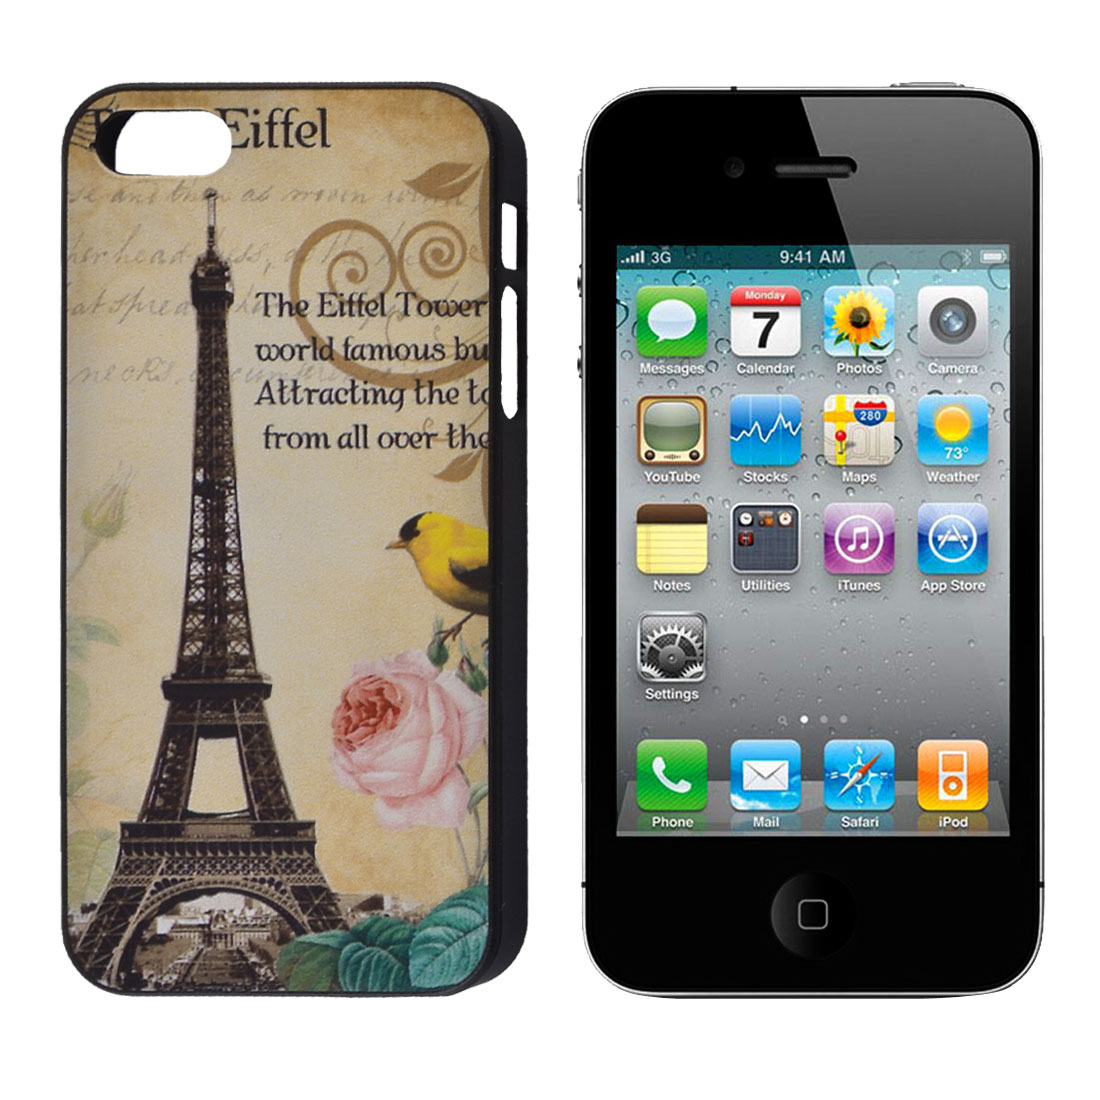 Classic London Big Ben IMD Hard Back Case Cover for iPhone 5 5G 5th Gen